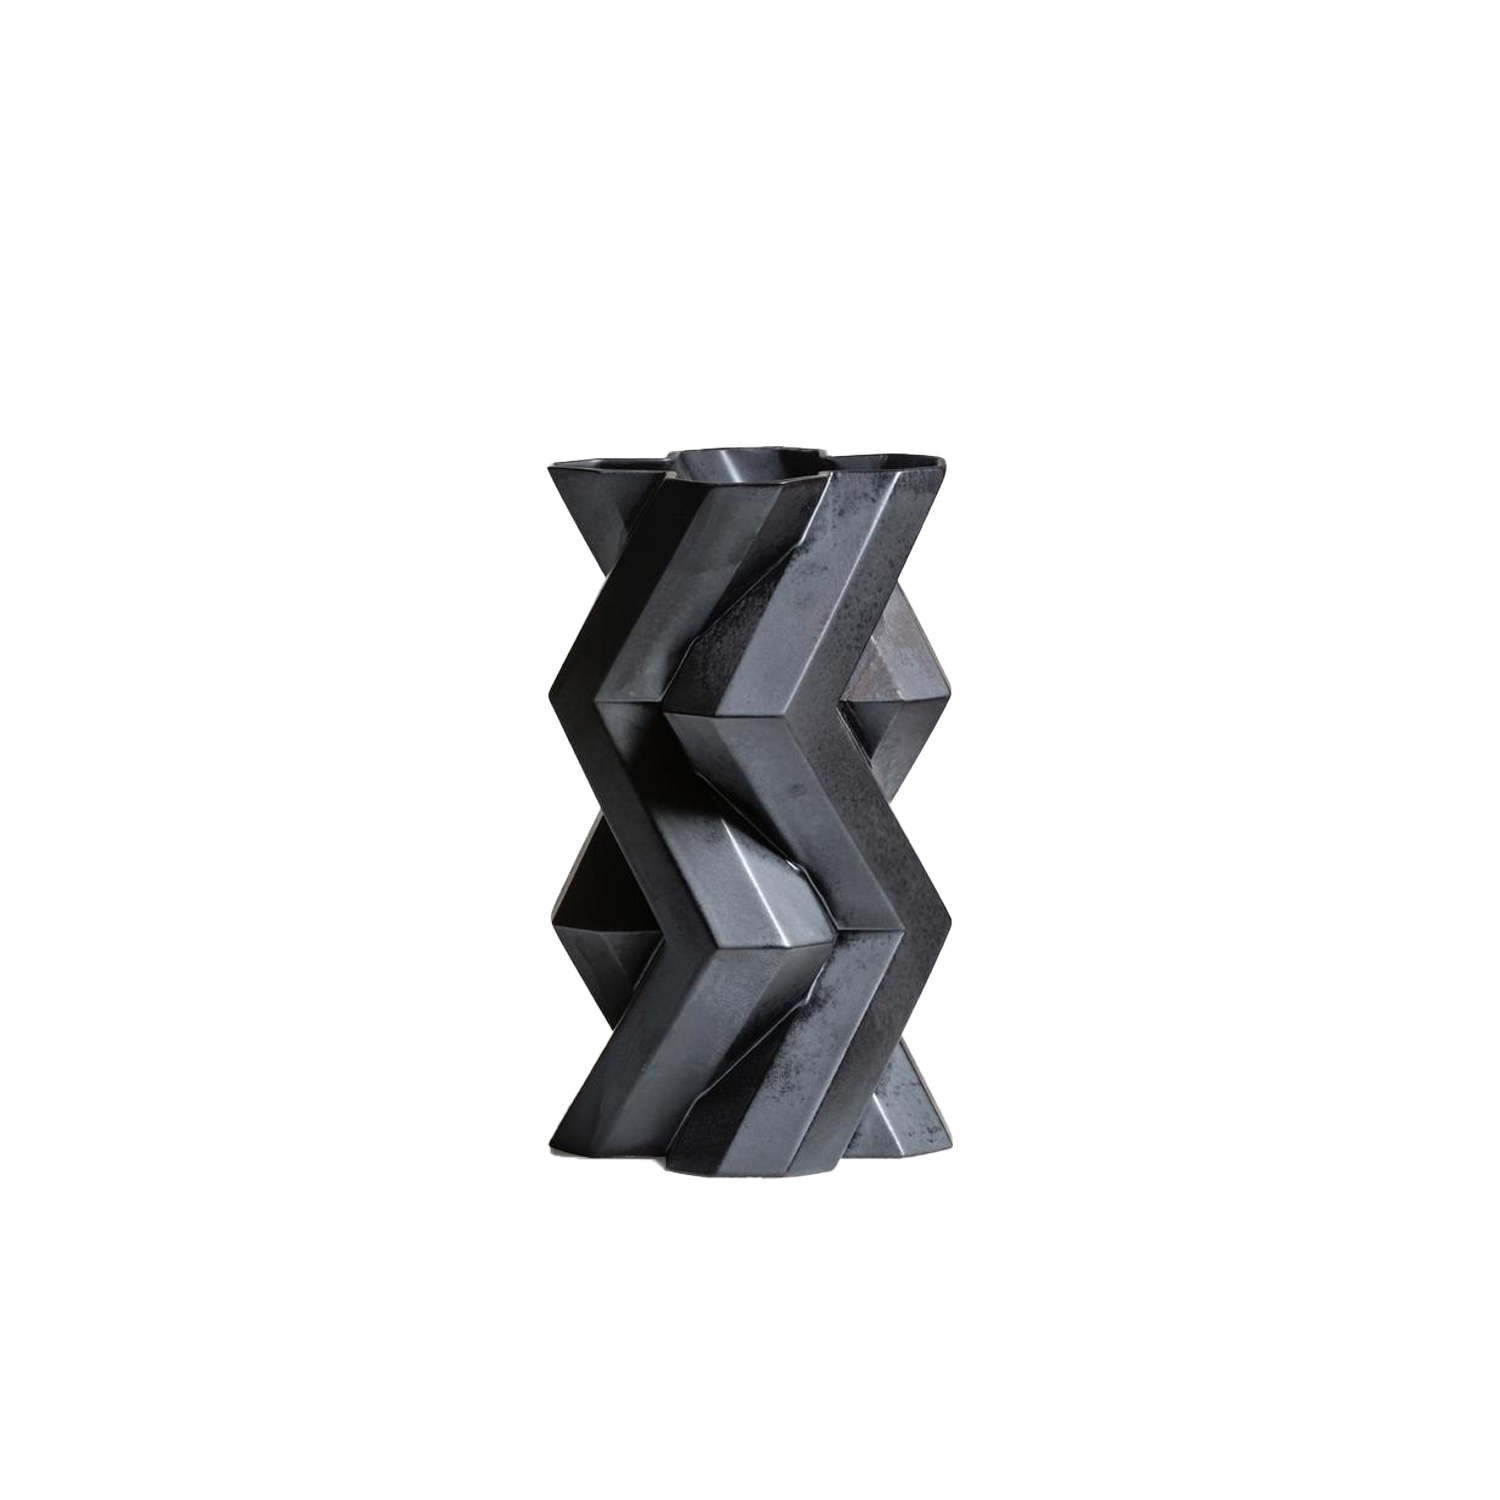 Fortress Tower Vase Iron - Designer Lara Bohinc explores the marriage of ancient and futuristic form in the new Fortress Vase range, which has created a more complex geometric and modern structure from the original inspiration of the octagonal towers at the Diocletian Palace in Croatia. The resulting hexagonal blocks interlock and embrace to allow the play of light and shade on the many surfaces and angles. These are handmade from ceramic in a small Italian artisanal workshop and come in different finishes.  | Matter of Stuff